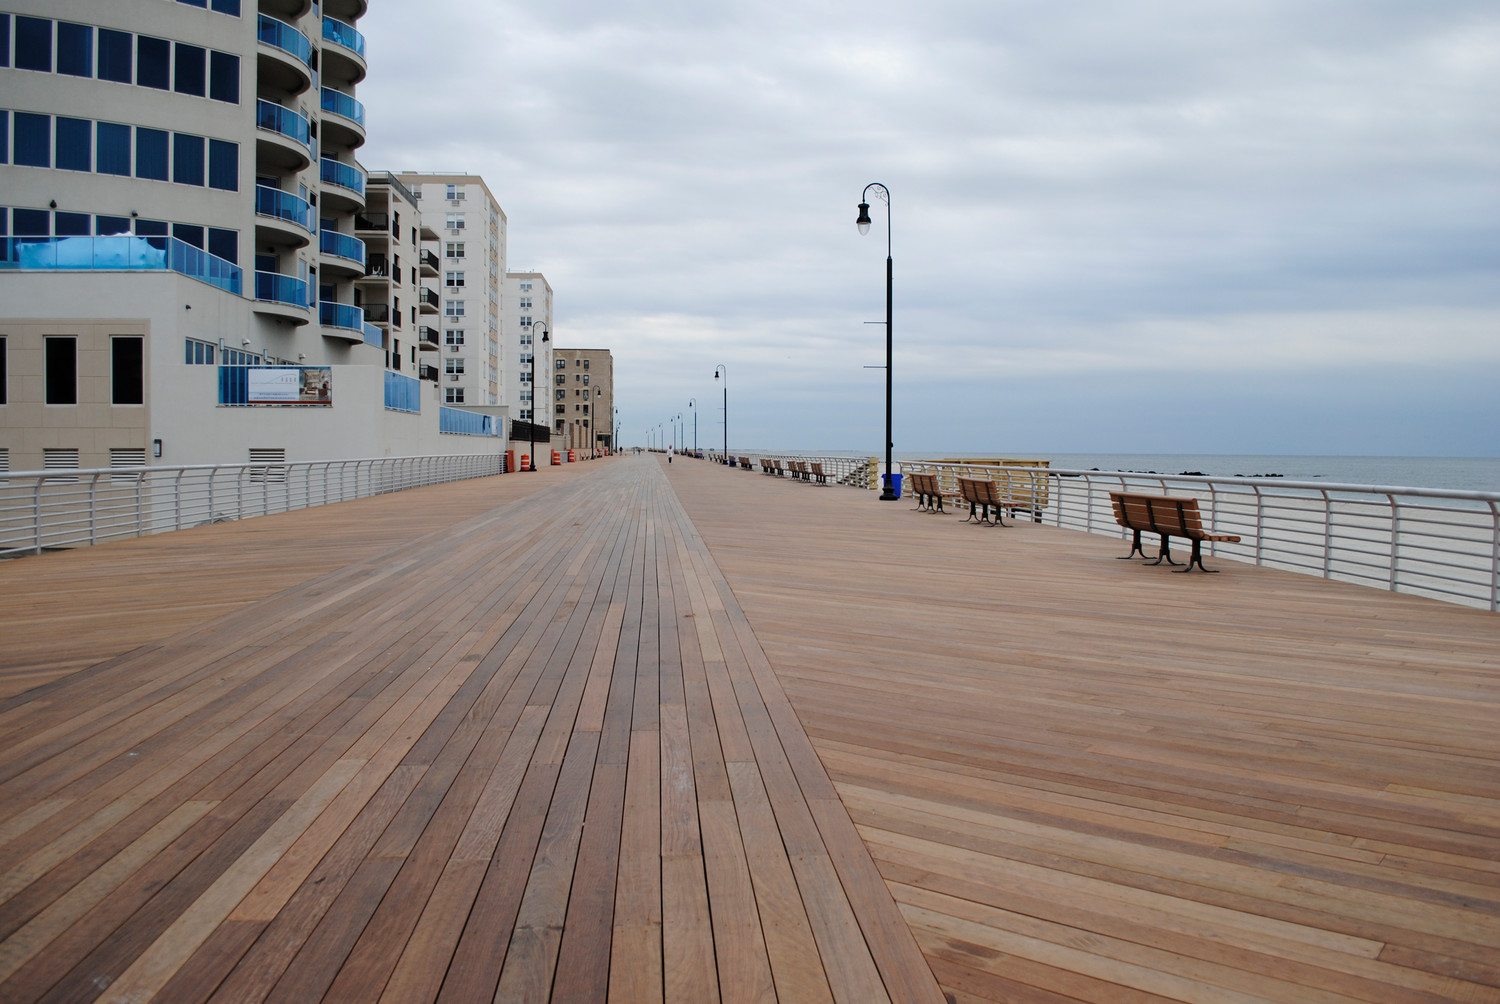 Atalantic Beach Will Copy Long S Concept Of Placing The Bike Lane In Boardwalk Center